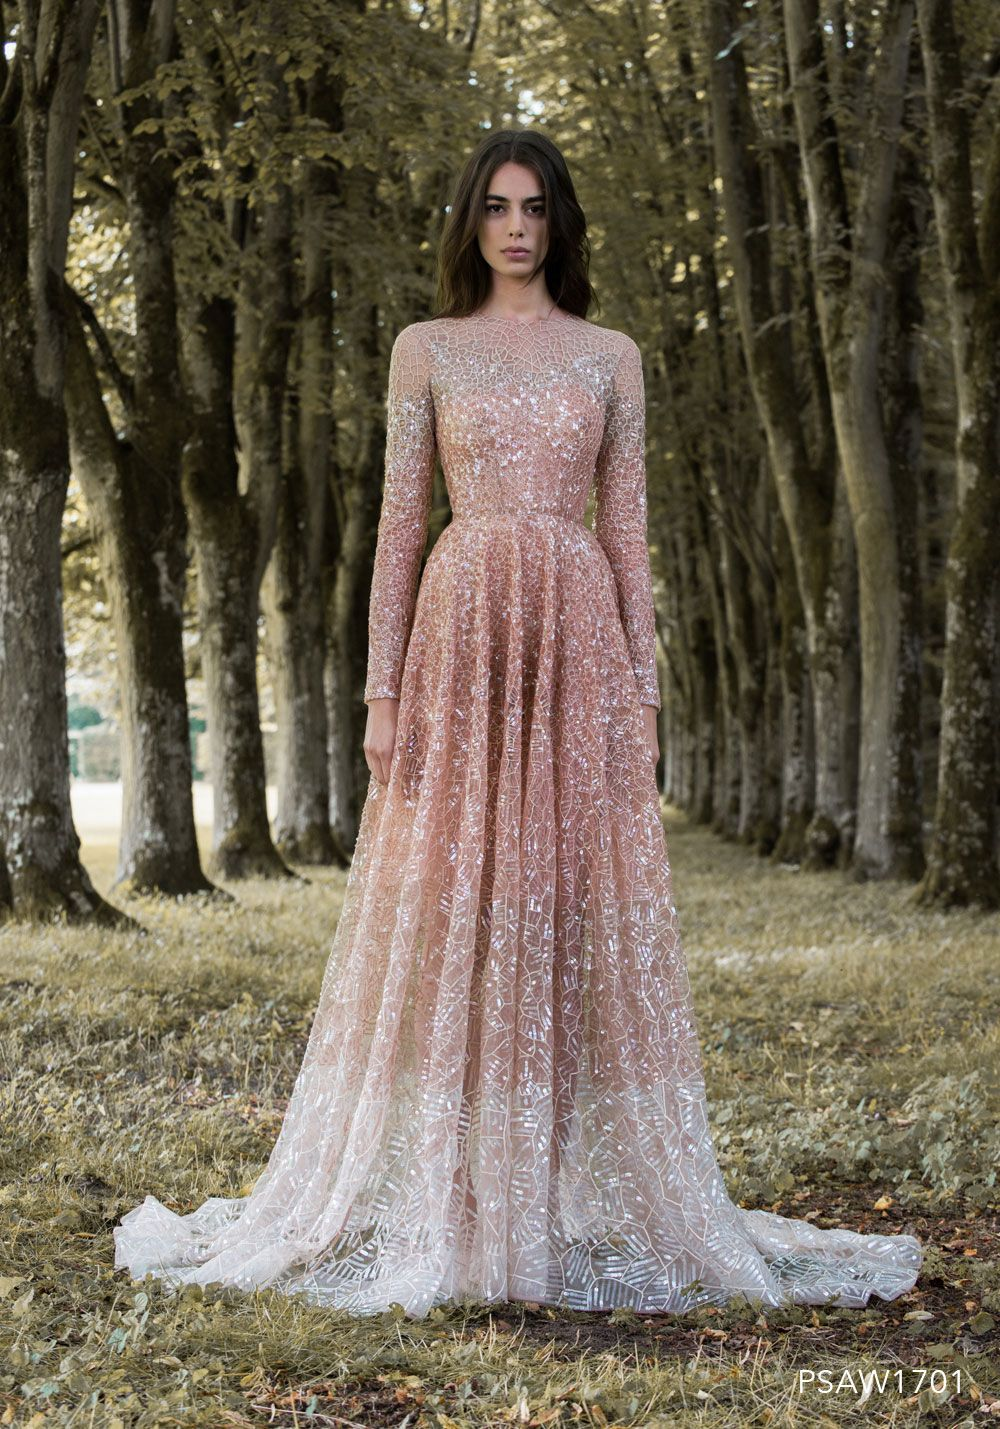 3f81183f9bd 2016-17 AW Couture